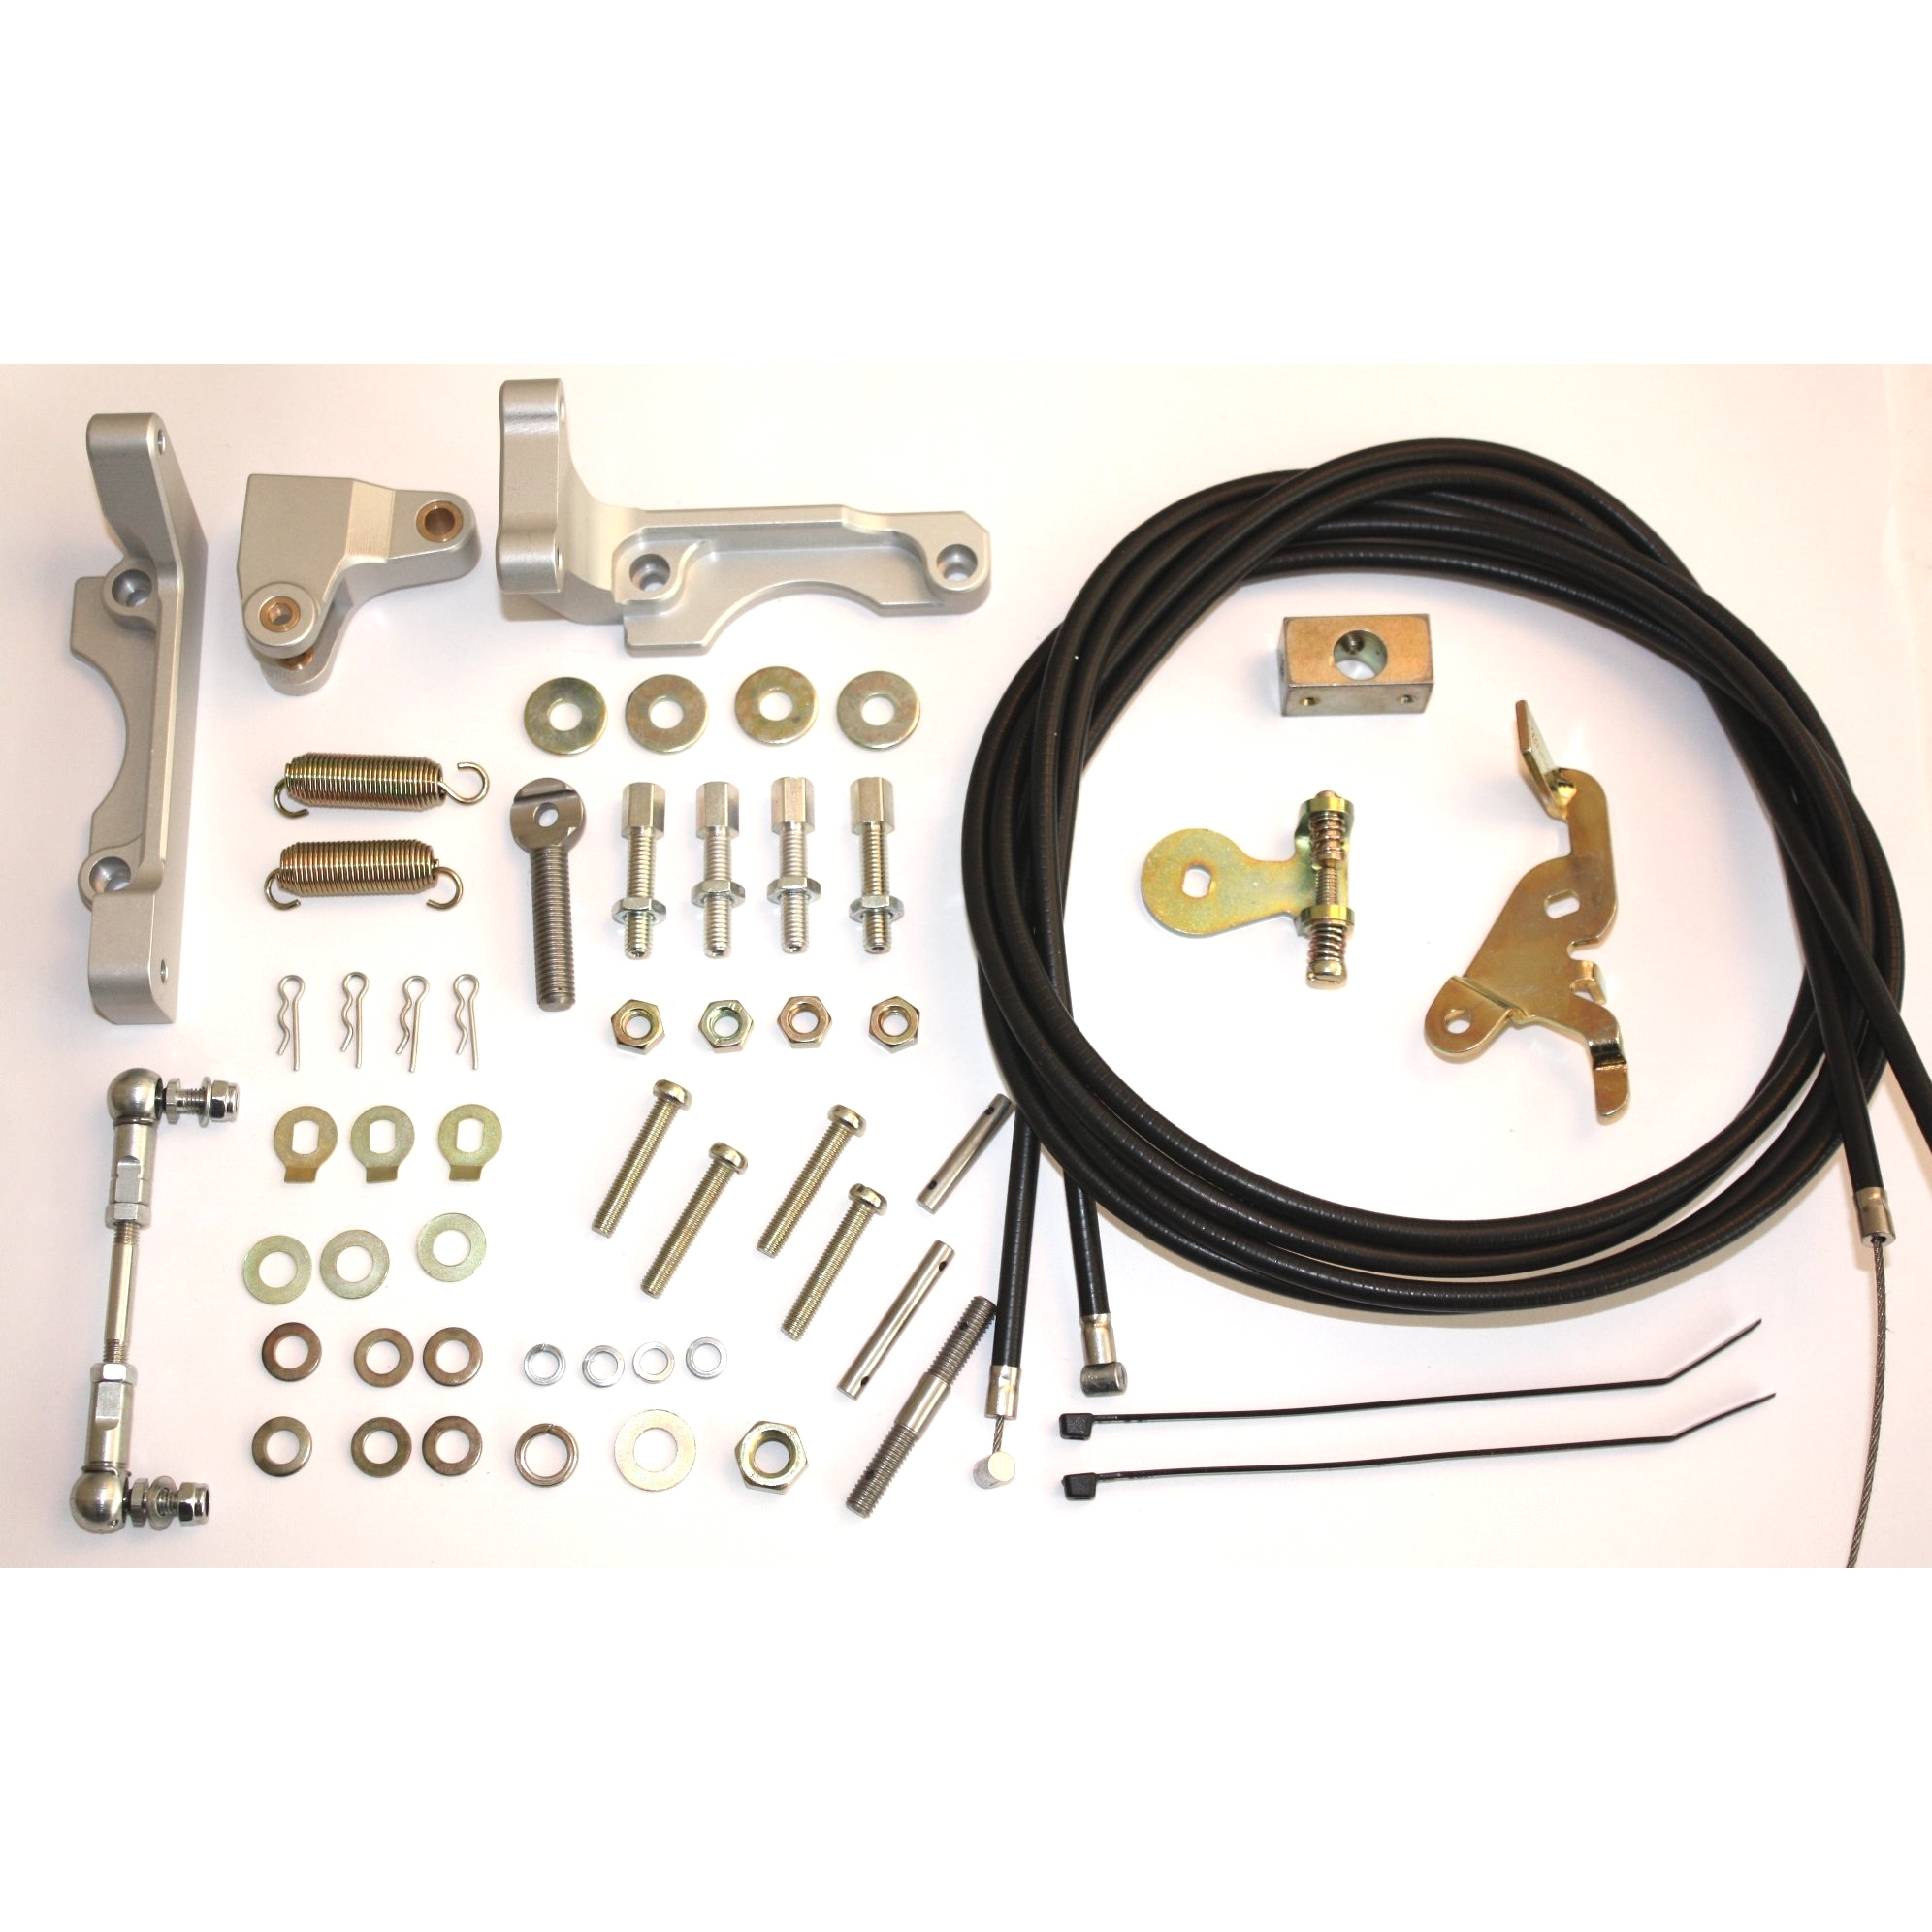 WEBER 38-55 DCOE/DCO/SP TWIN CABLE CARBURETTOR/CARB THROTTLE LINKAGE KIT